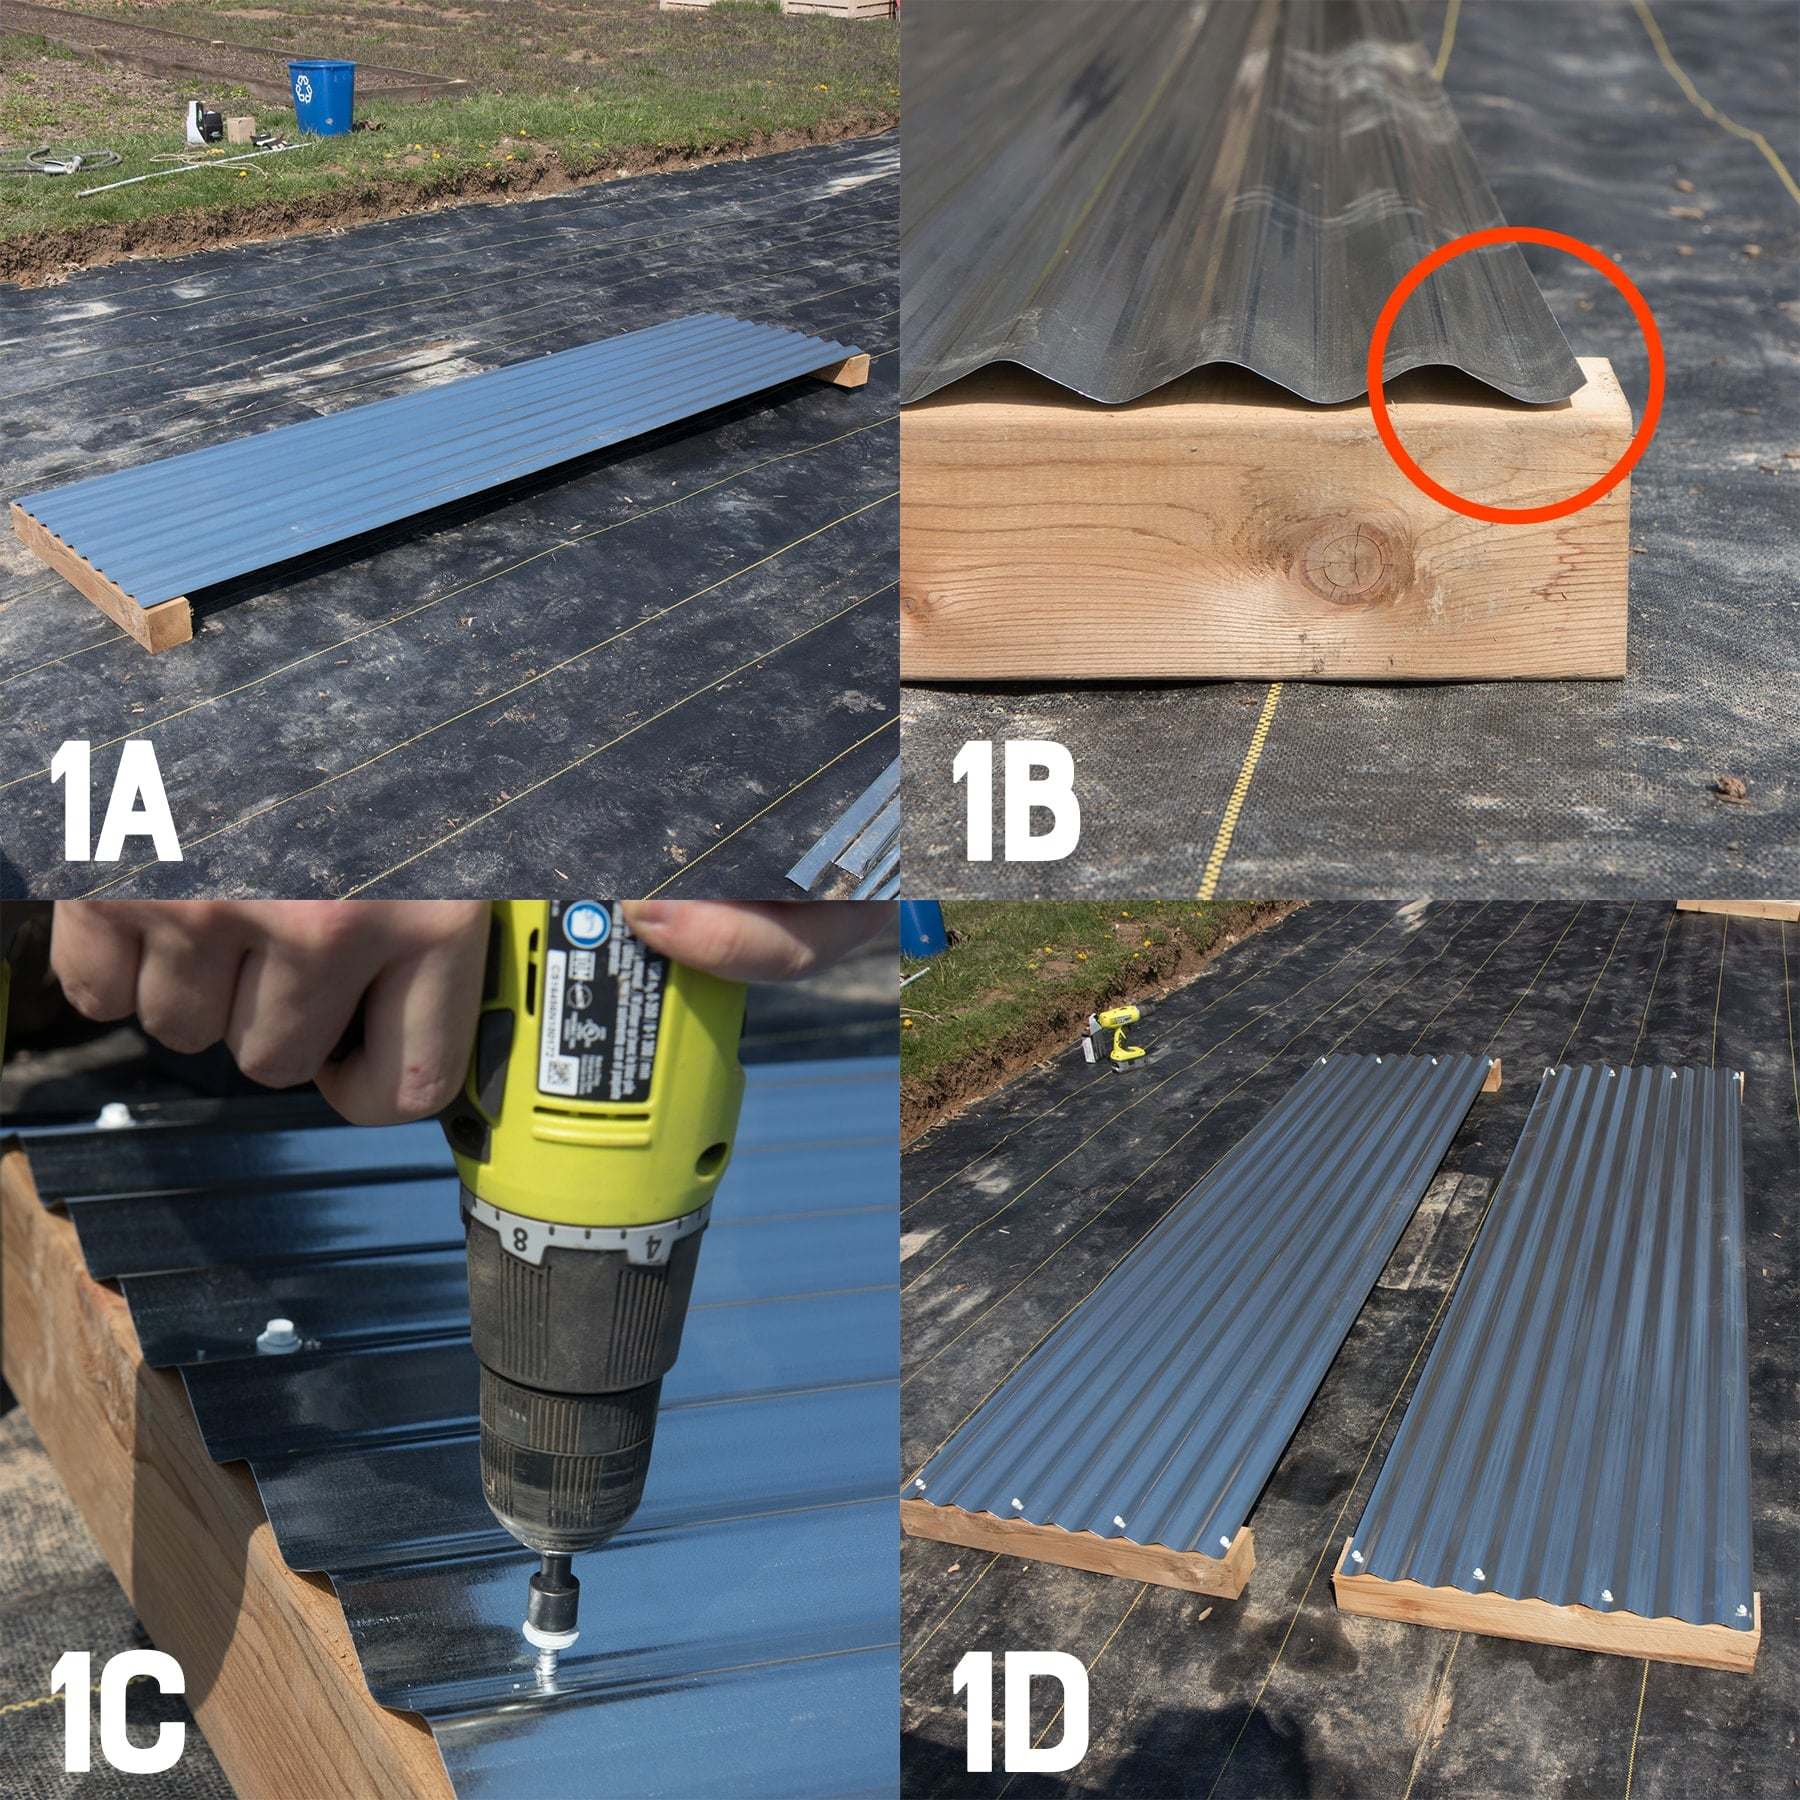 Four image collage of building the first side of a galvanized steel raised bed